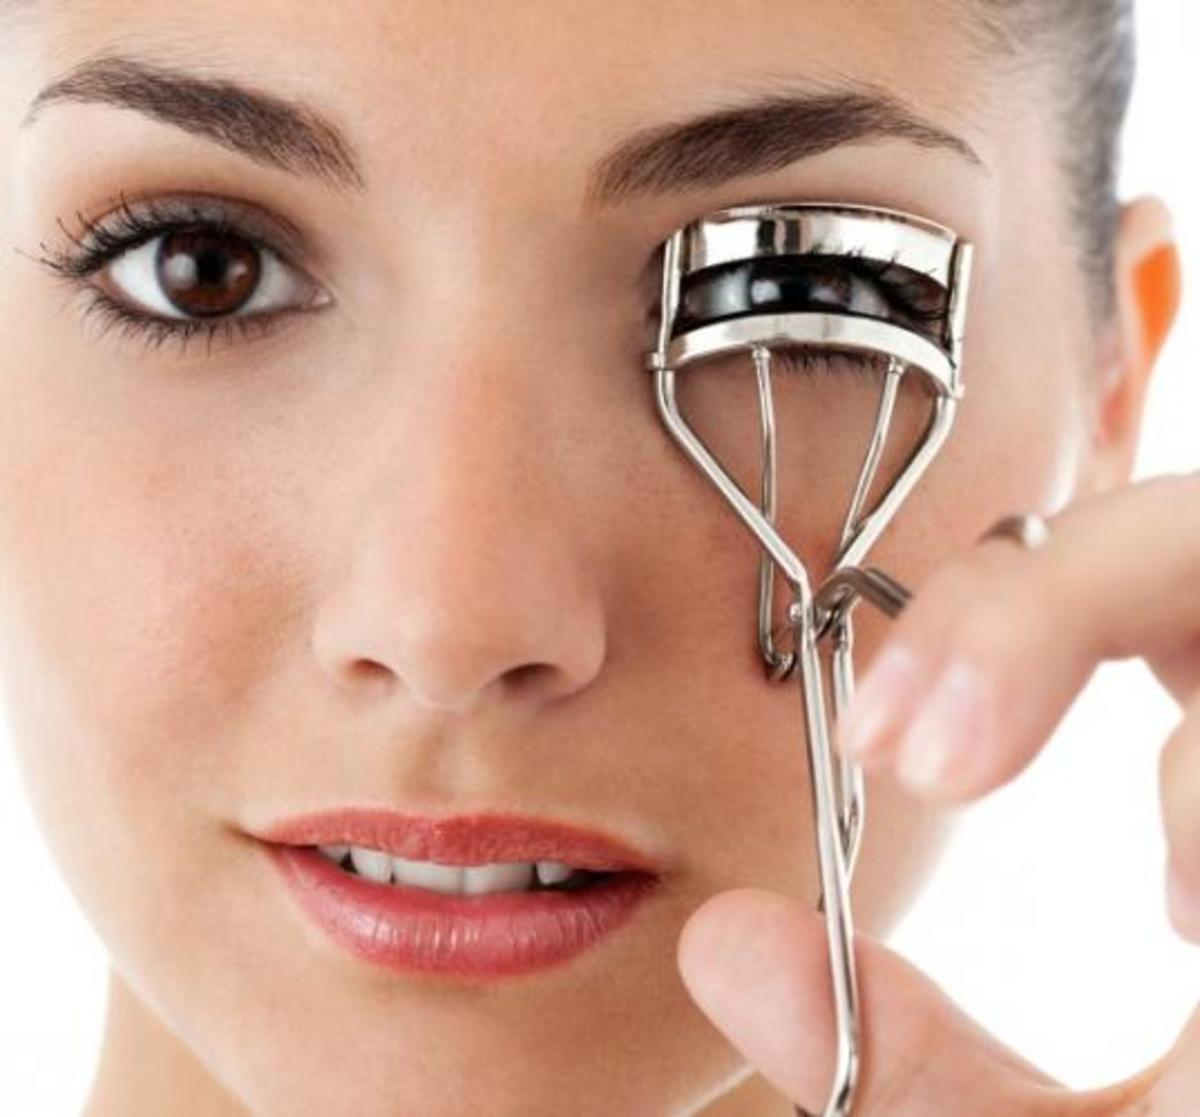 Curling your eye lashes adds an instant lift